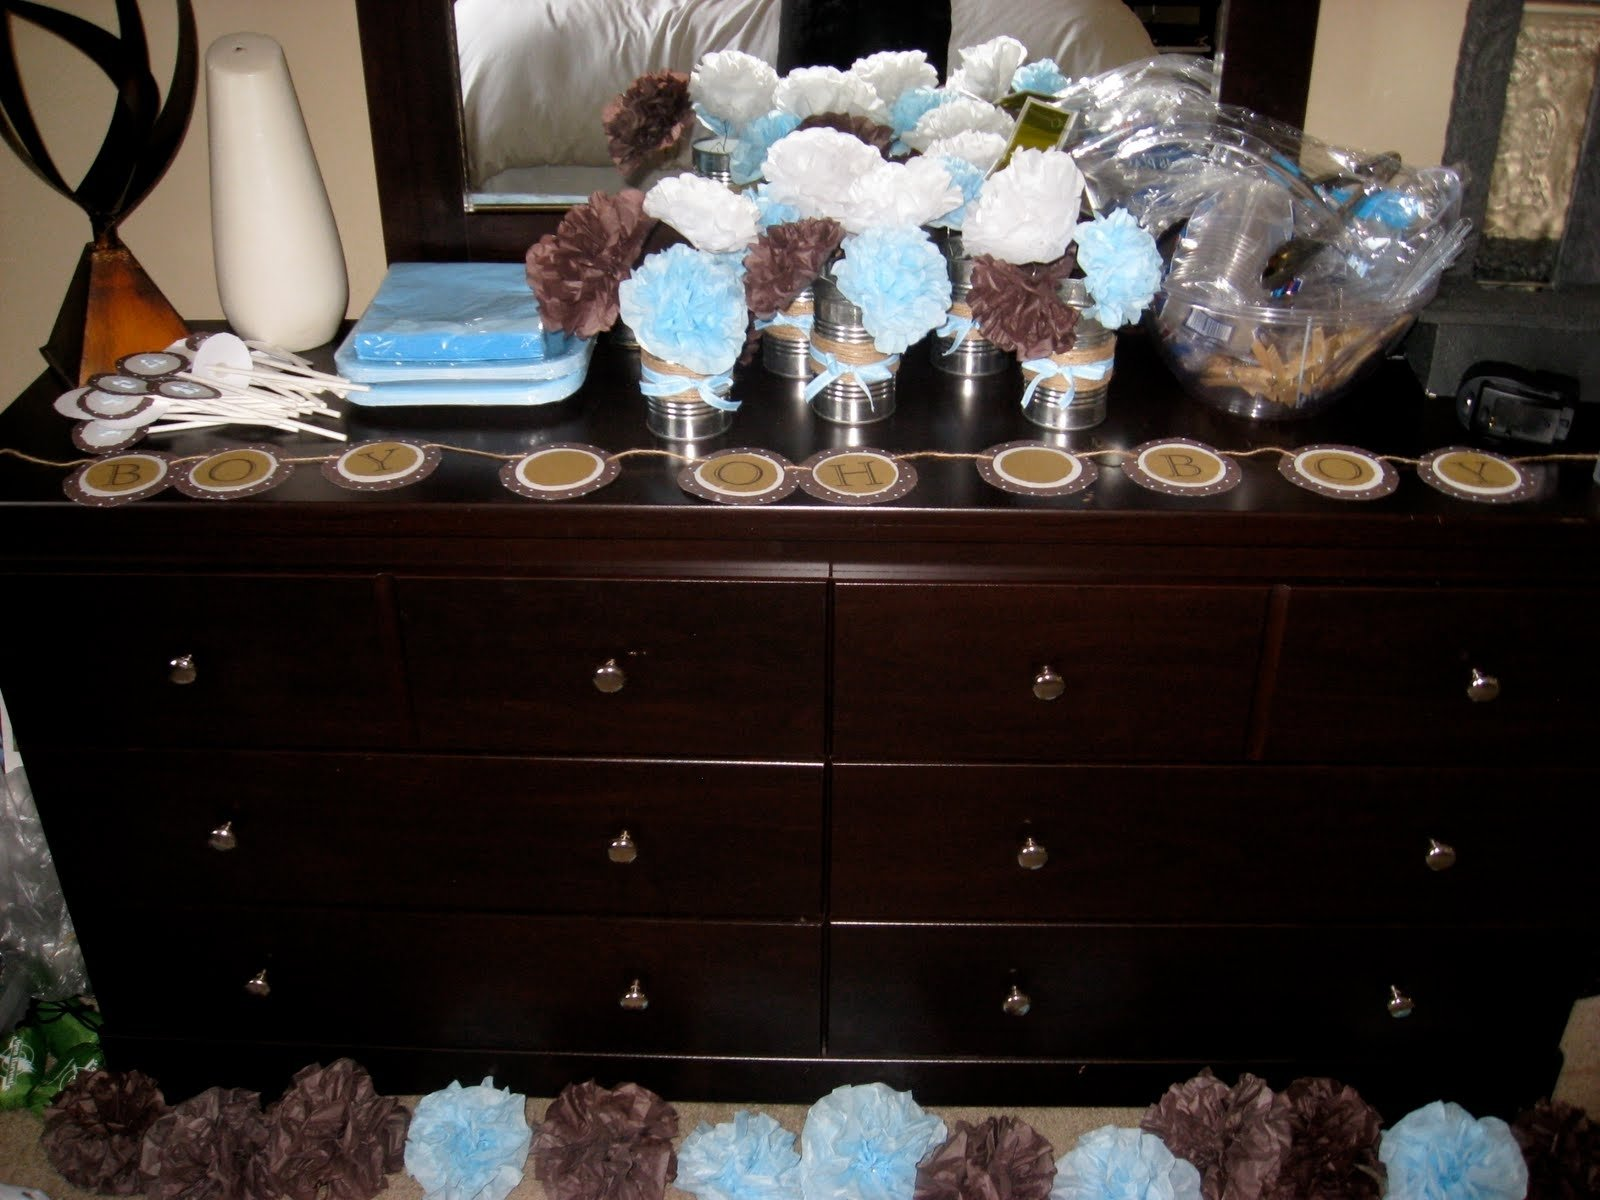 10 Fabulous Blue And Brown Baby Shower Ideas perfect ideas blue and brown baby shower decorations wonderful table 2020